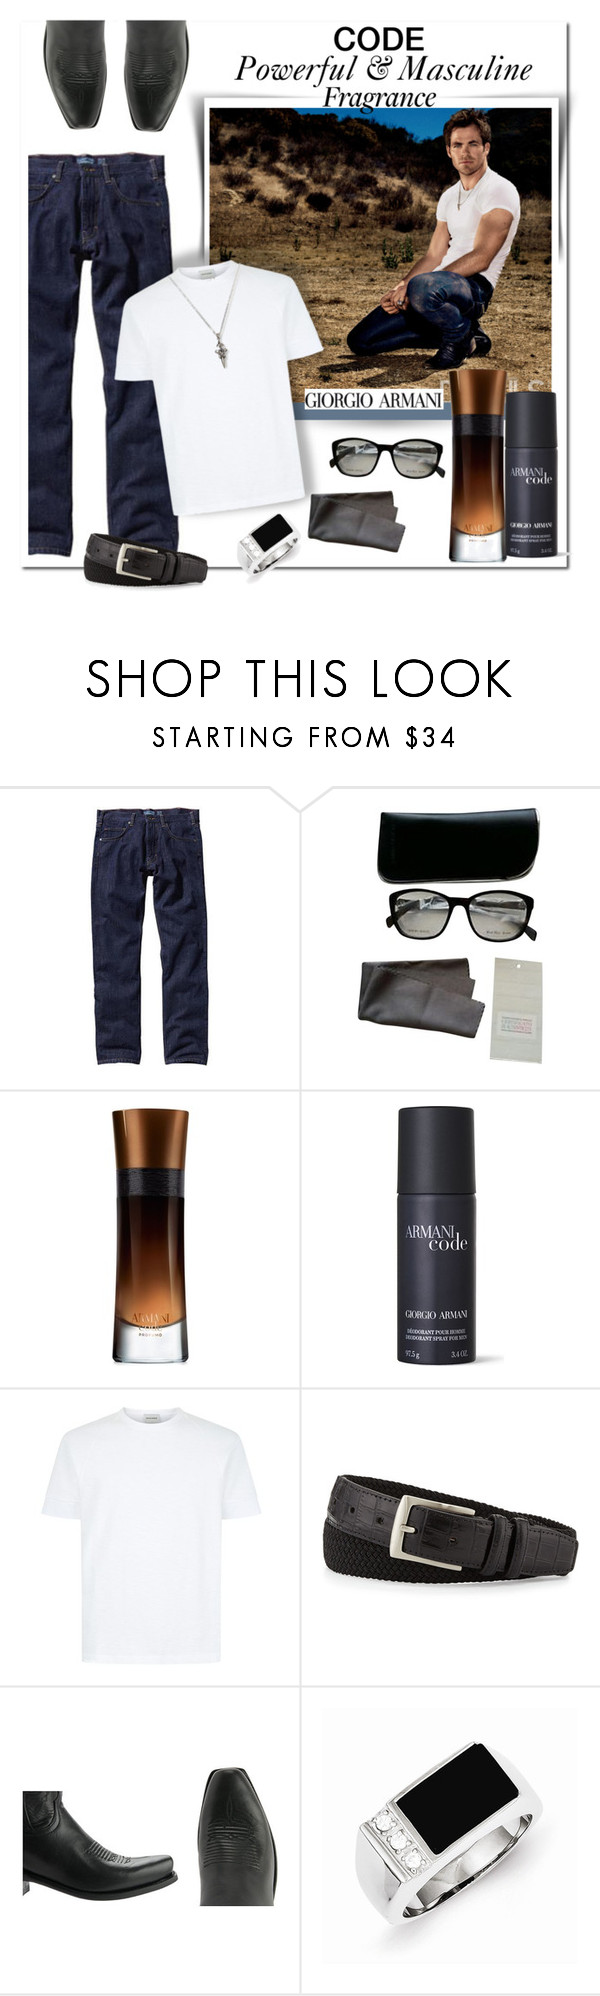 """Giorgio Armani - Armani CODE"" by wanda-india-acosta ❤ liked on Polyvore featuring Patagonia, Giorgio Armani, Neiman Marcus, Lucchese, Seven London, men's fashion and menswear"